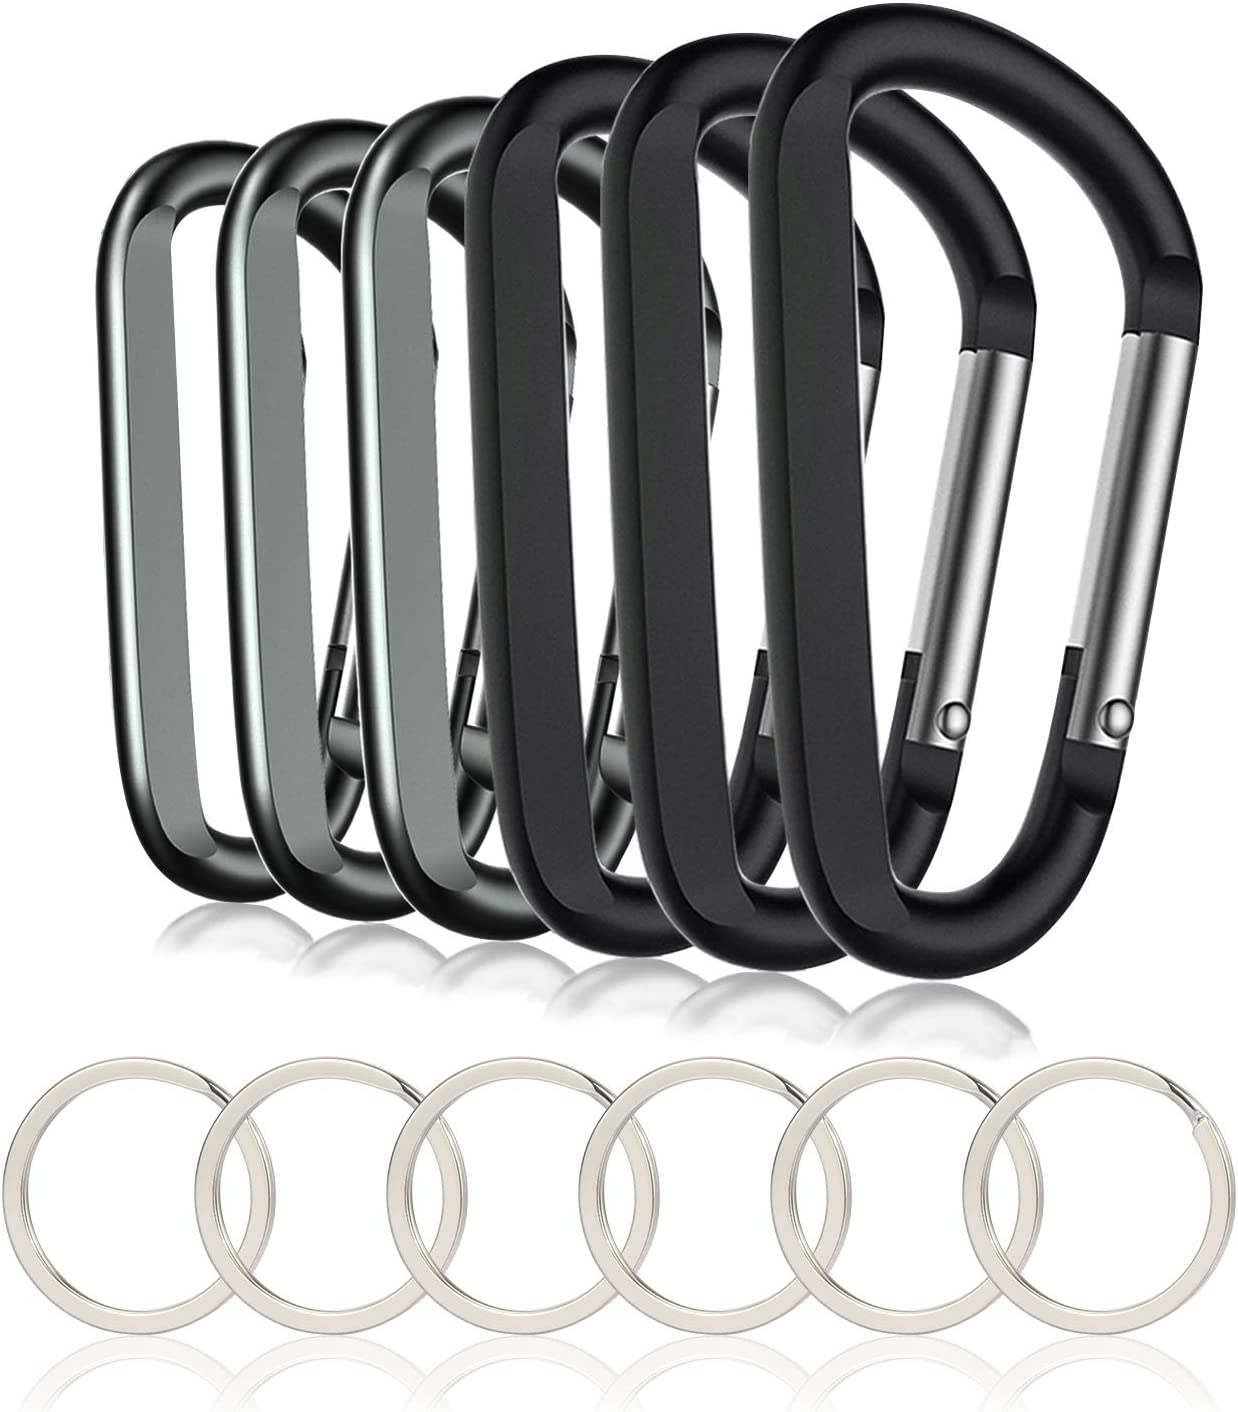 6 Pcs Upgraded D-Ring Locking Carabiner 3 1 Inch D Shape Keychain Clips for O...